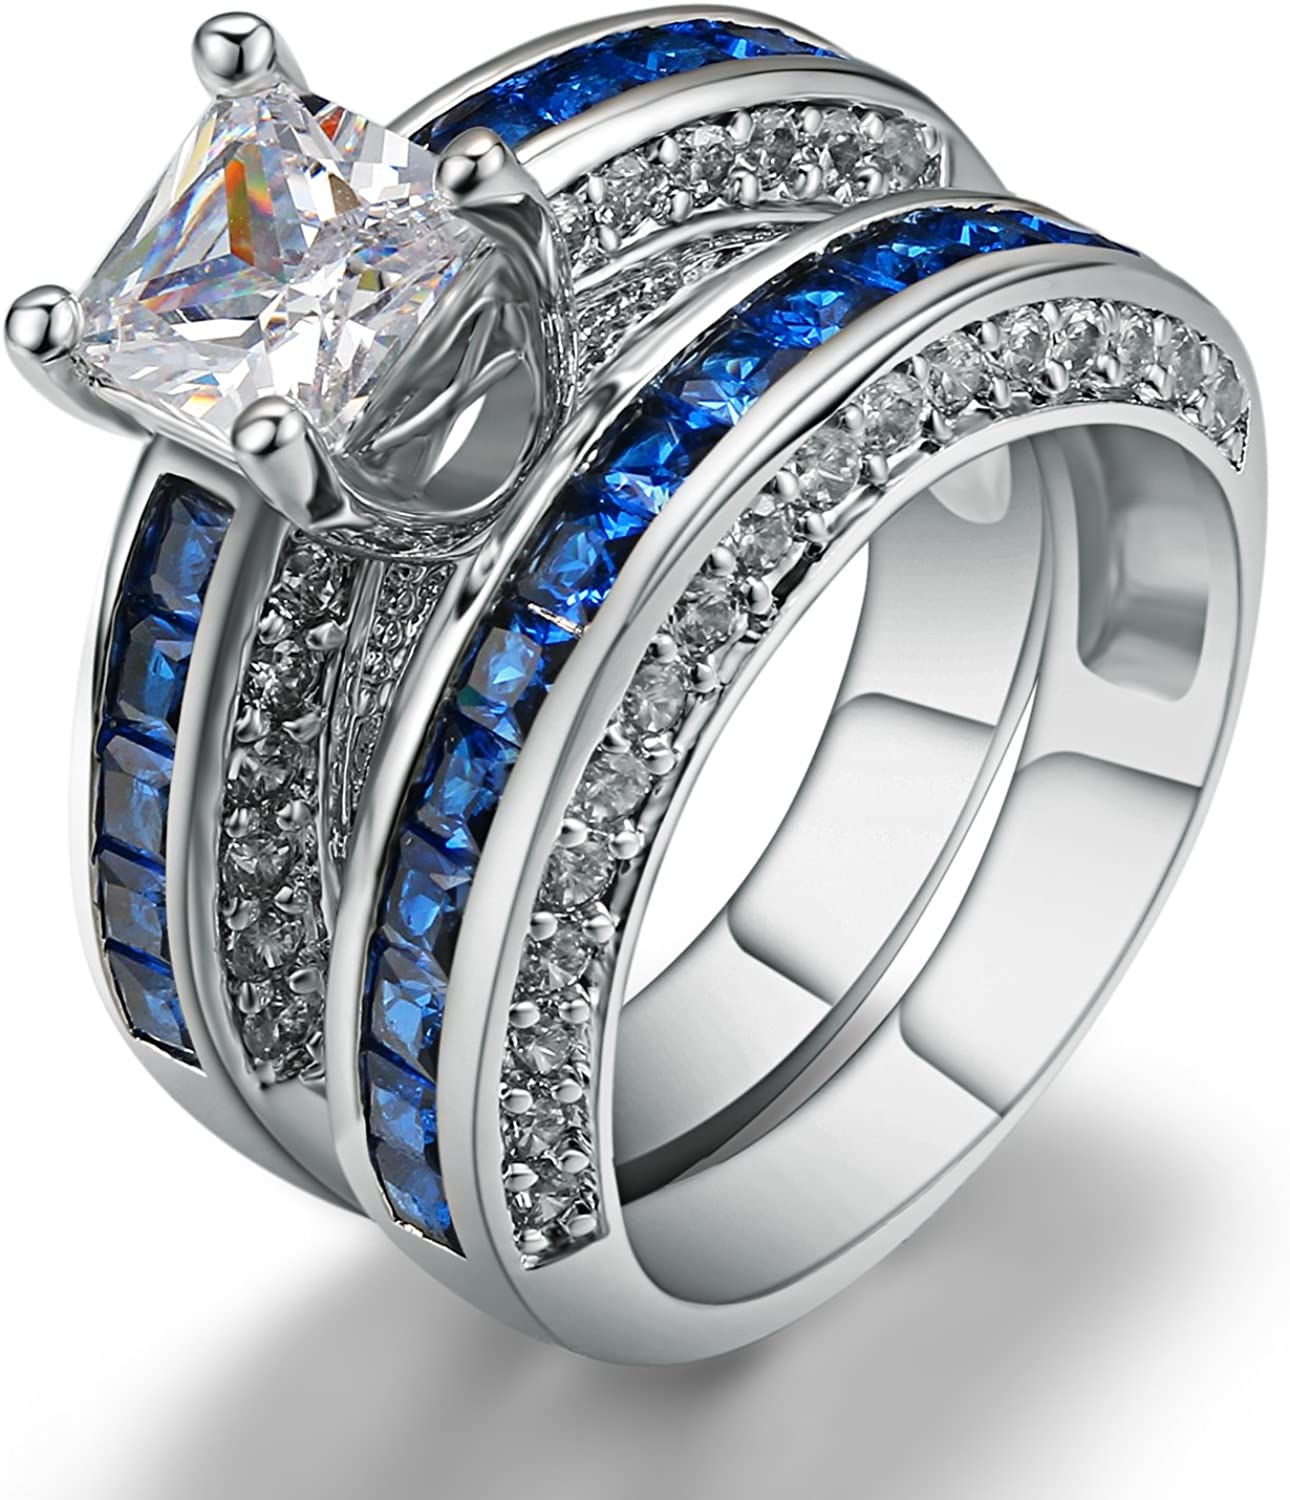 European Style 2 Pieces Platinum Plated Cubic Zirconia Wedding Engagement Band Couple Rings